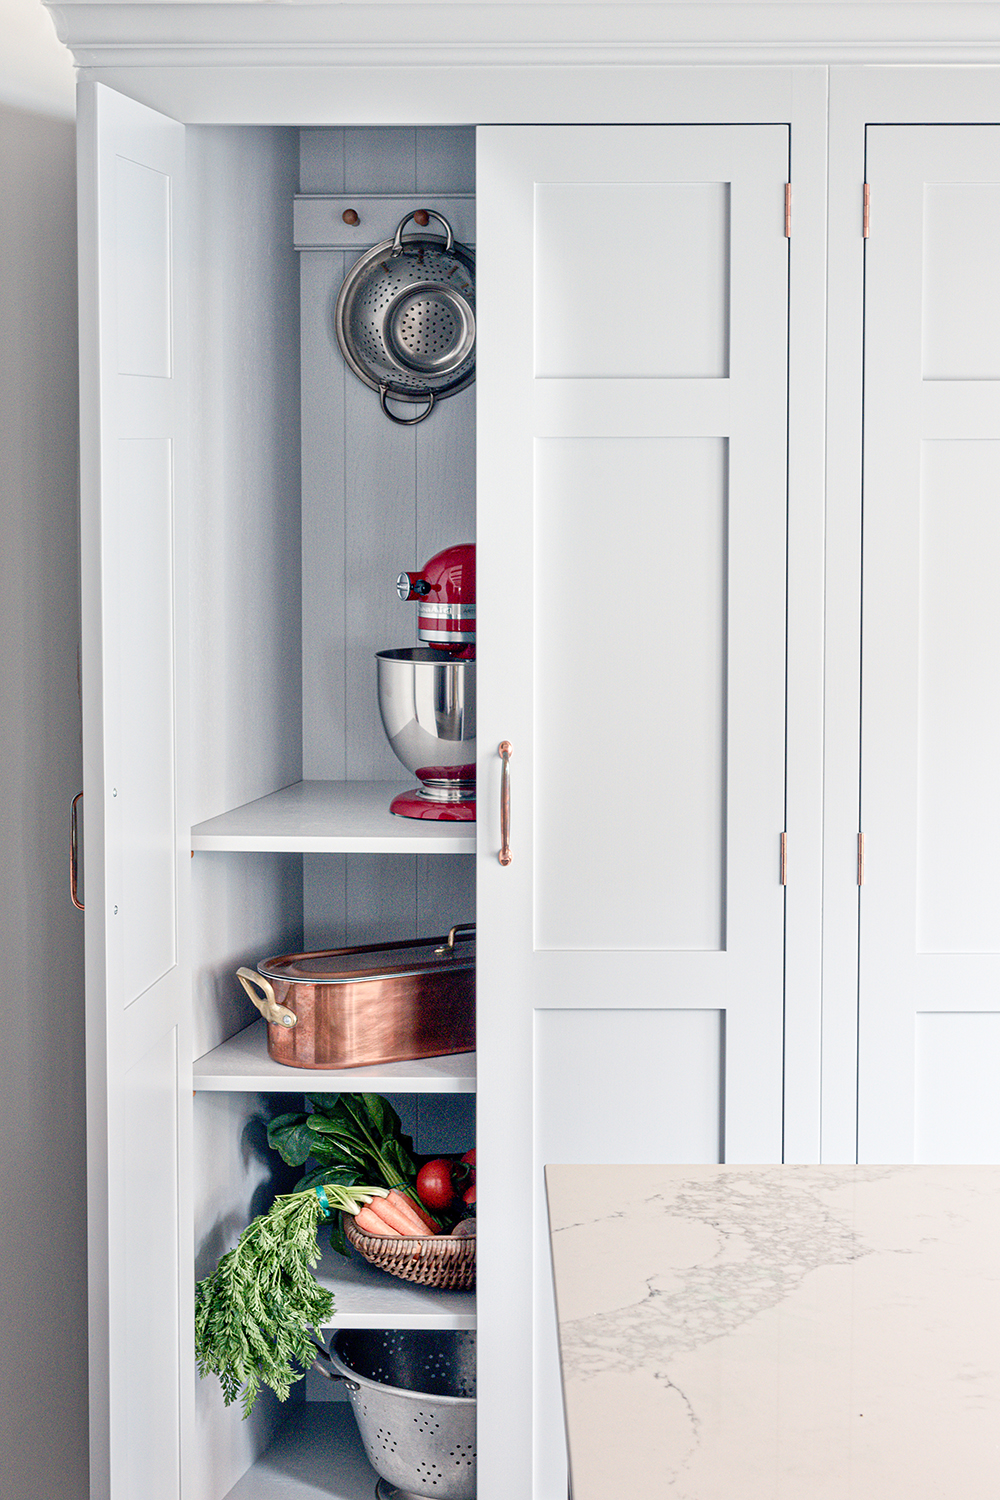 Half open larder cabinets with adjustable shelves and shaker pegs hand painted in light grey with a red Kitchen Aid mixer.